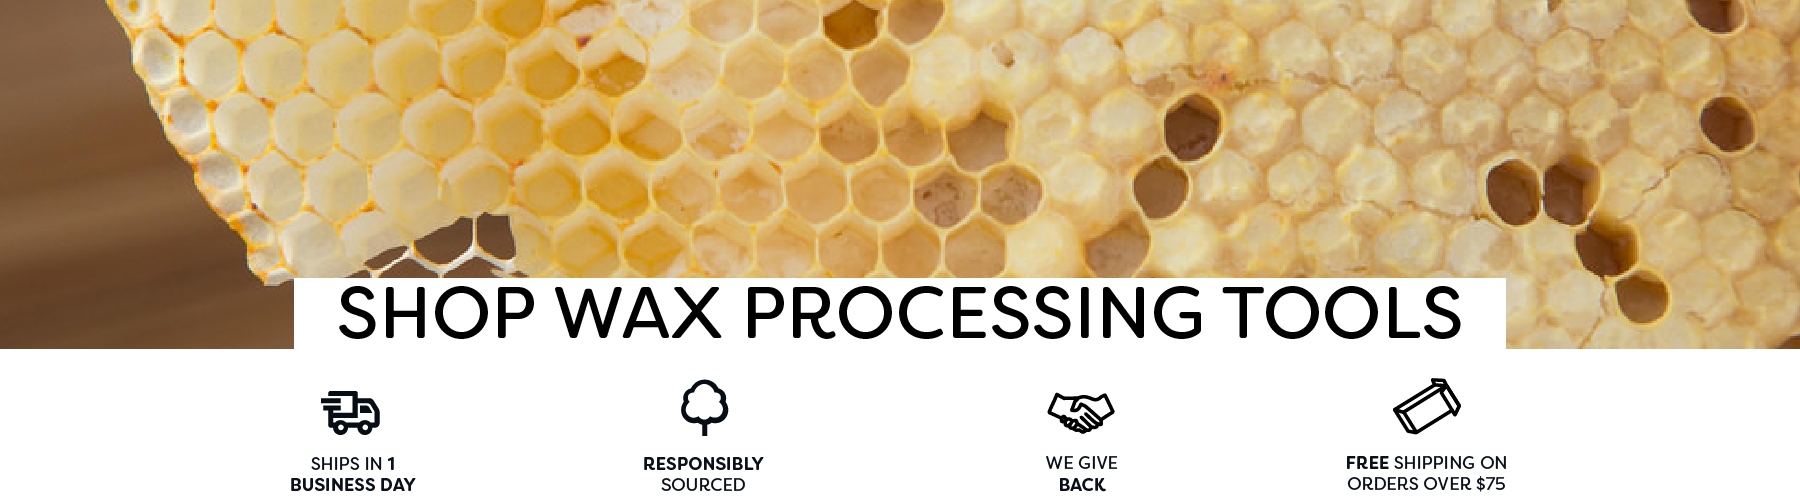 Wax and wax processing products to help you harvest, store, and filter wax from your beehives. Make your next harvest a breeze and enjoy that sweet sweet honey!